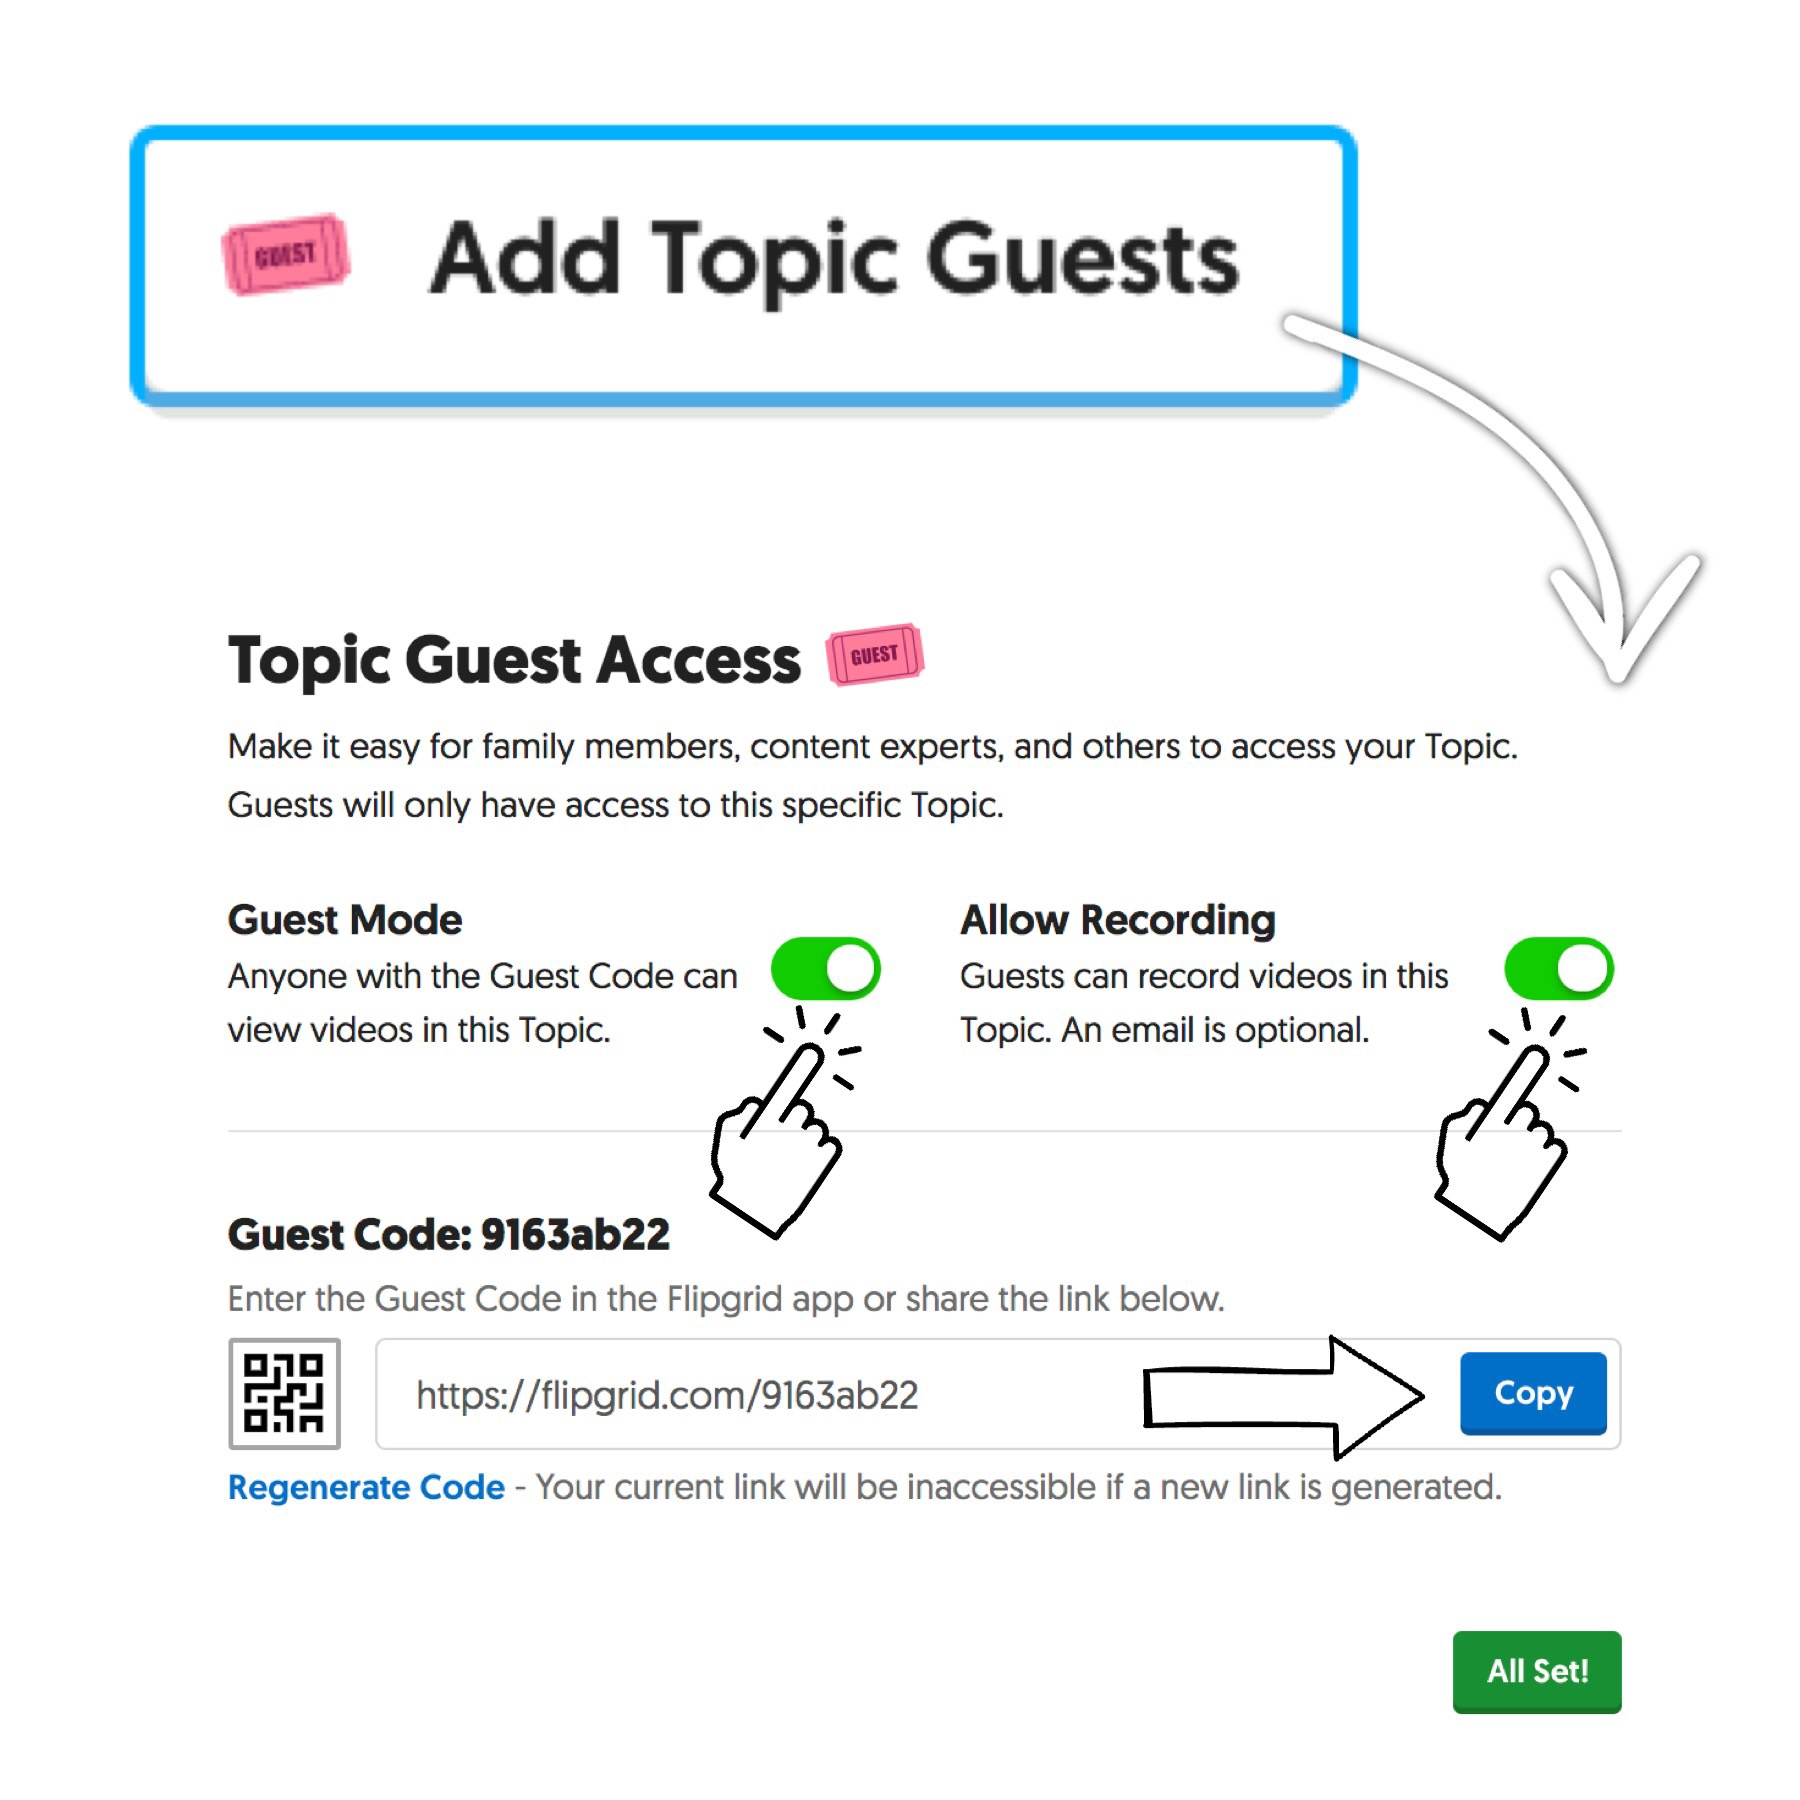 Guest Mode - When logged into your Flipgrid Admin account, create or view the desired Topic.Click on Add Topic Guests and enable Guest Mode.If desired, turn ON the option to Allow Recording.Then share the Guest Code with the folks you are inviting to the Topic.*Note that your Guest Code will be inaccessible if a new link is generated.